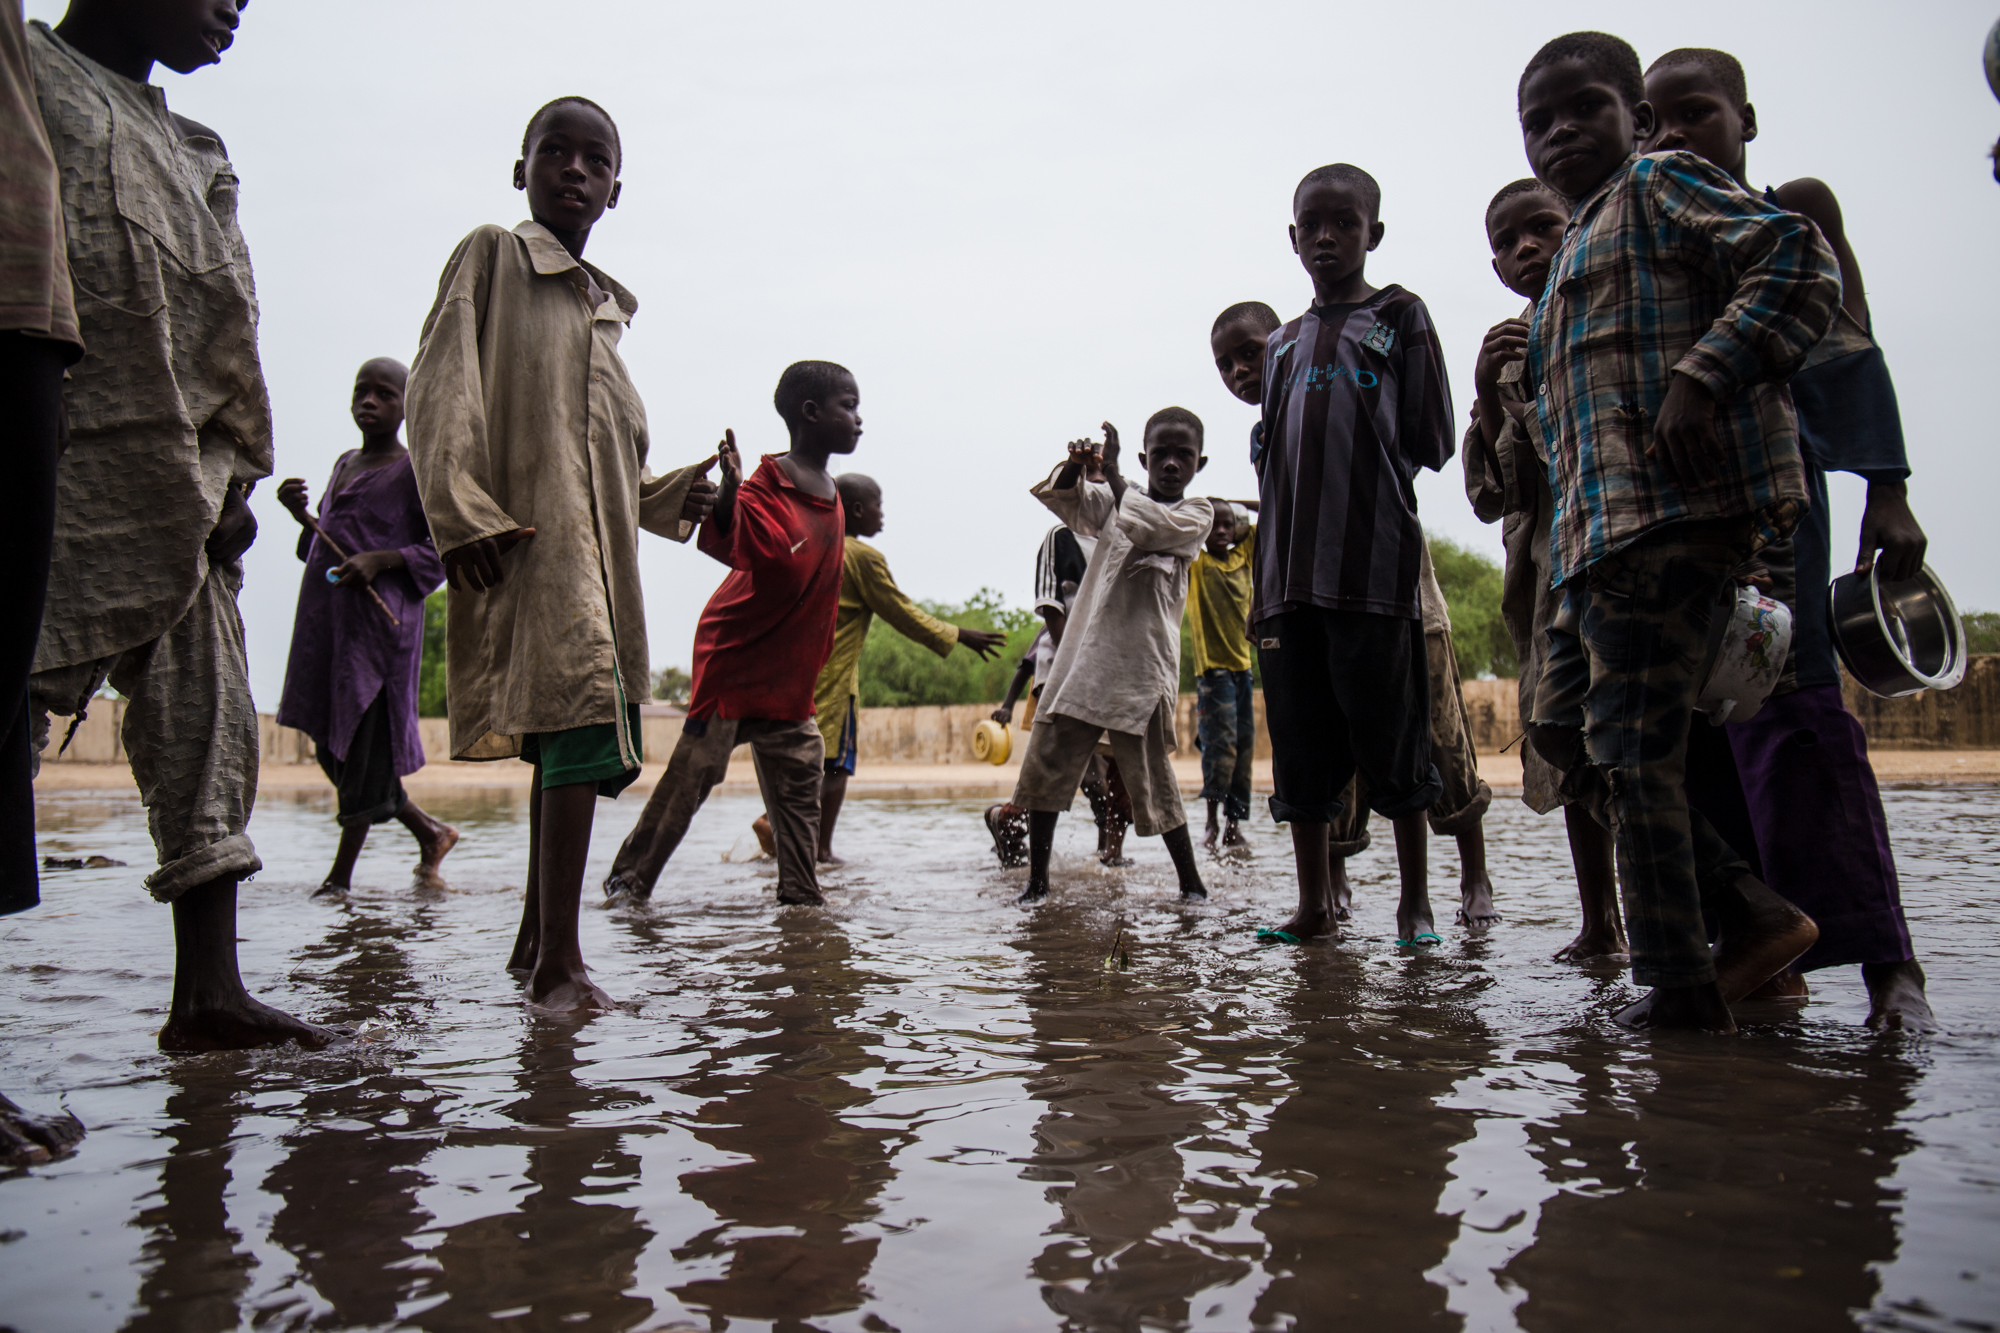 Nearly 1.4 million internally displaced people living in cholera 'hotspots' as outbreak spreads in northeast Nigeria